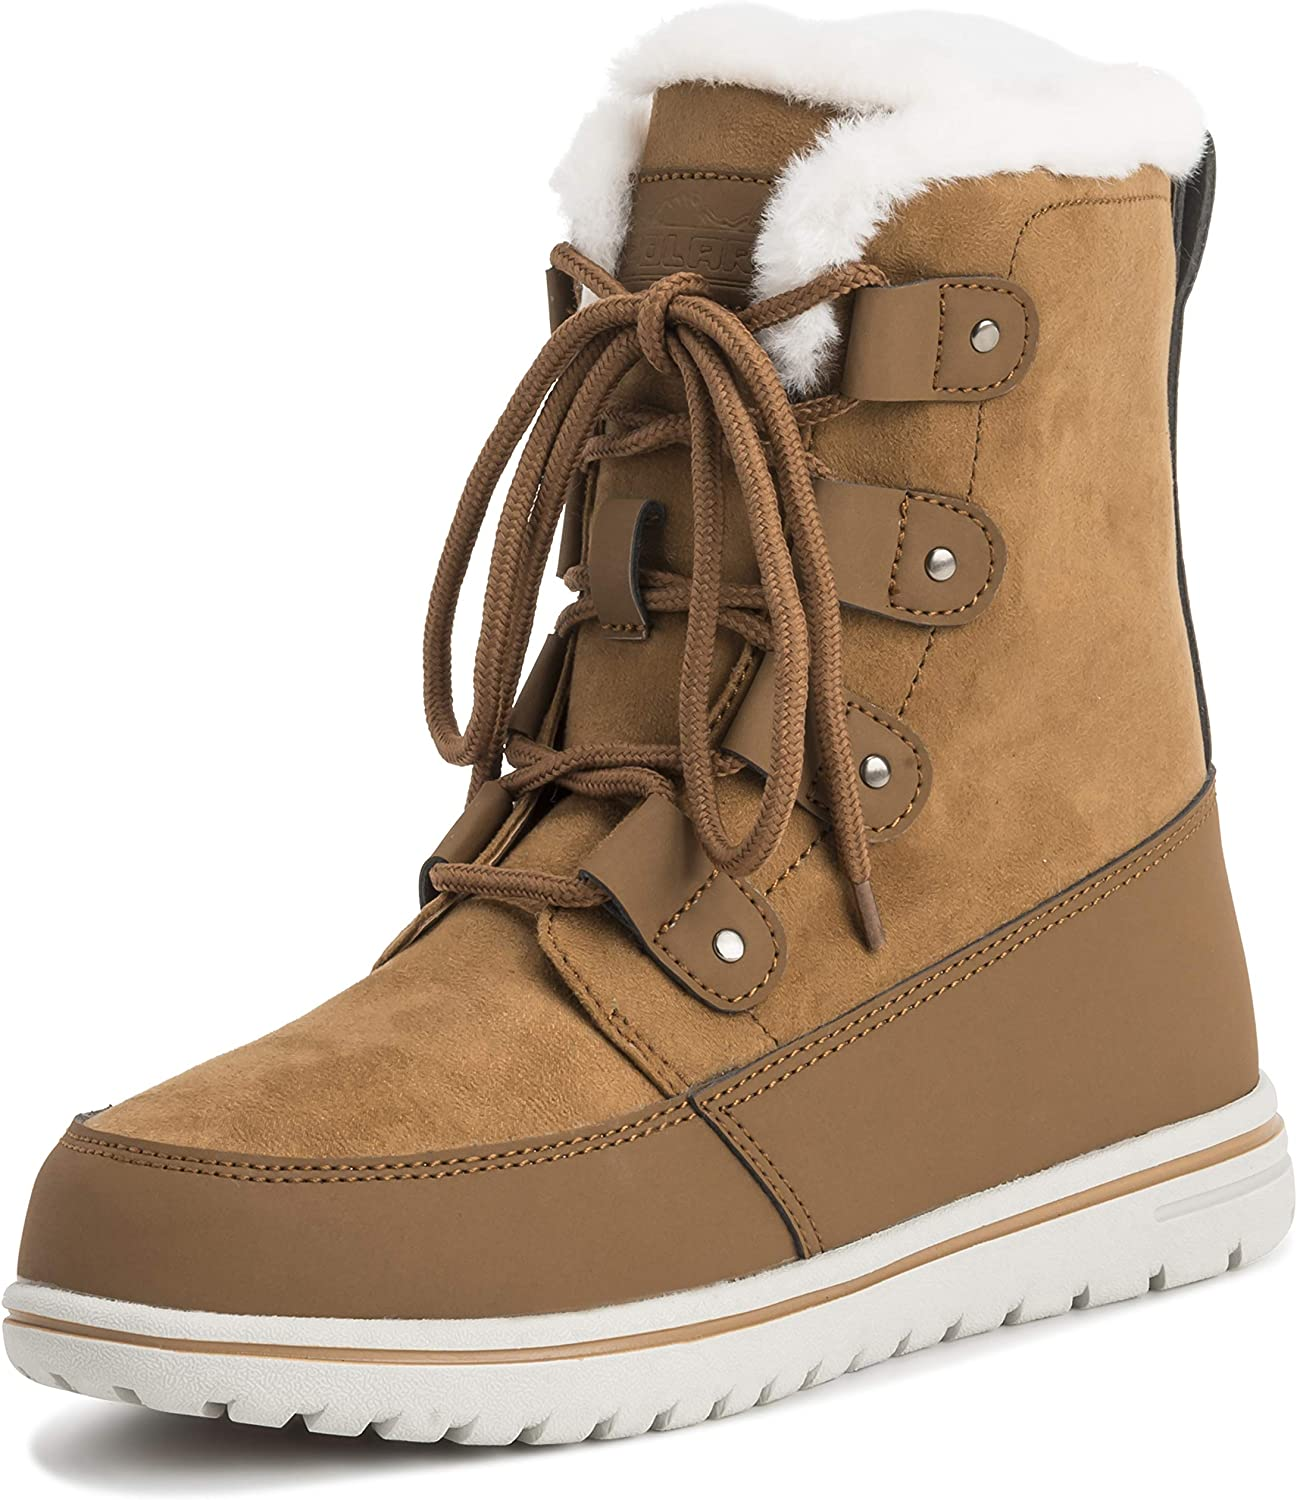 Polar Womens Quilted Short Faux Fur Snow Waterproof Winter Durable Warm Boots - 7 - TAN38 AYC0522